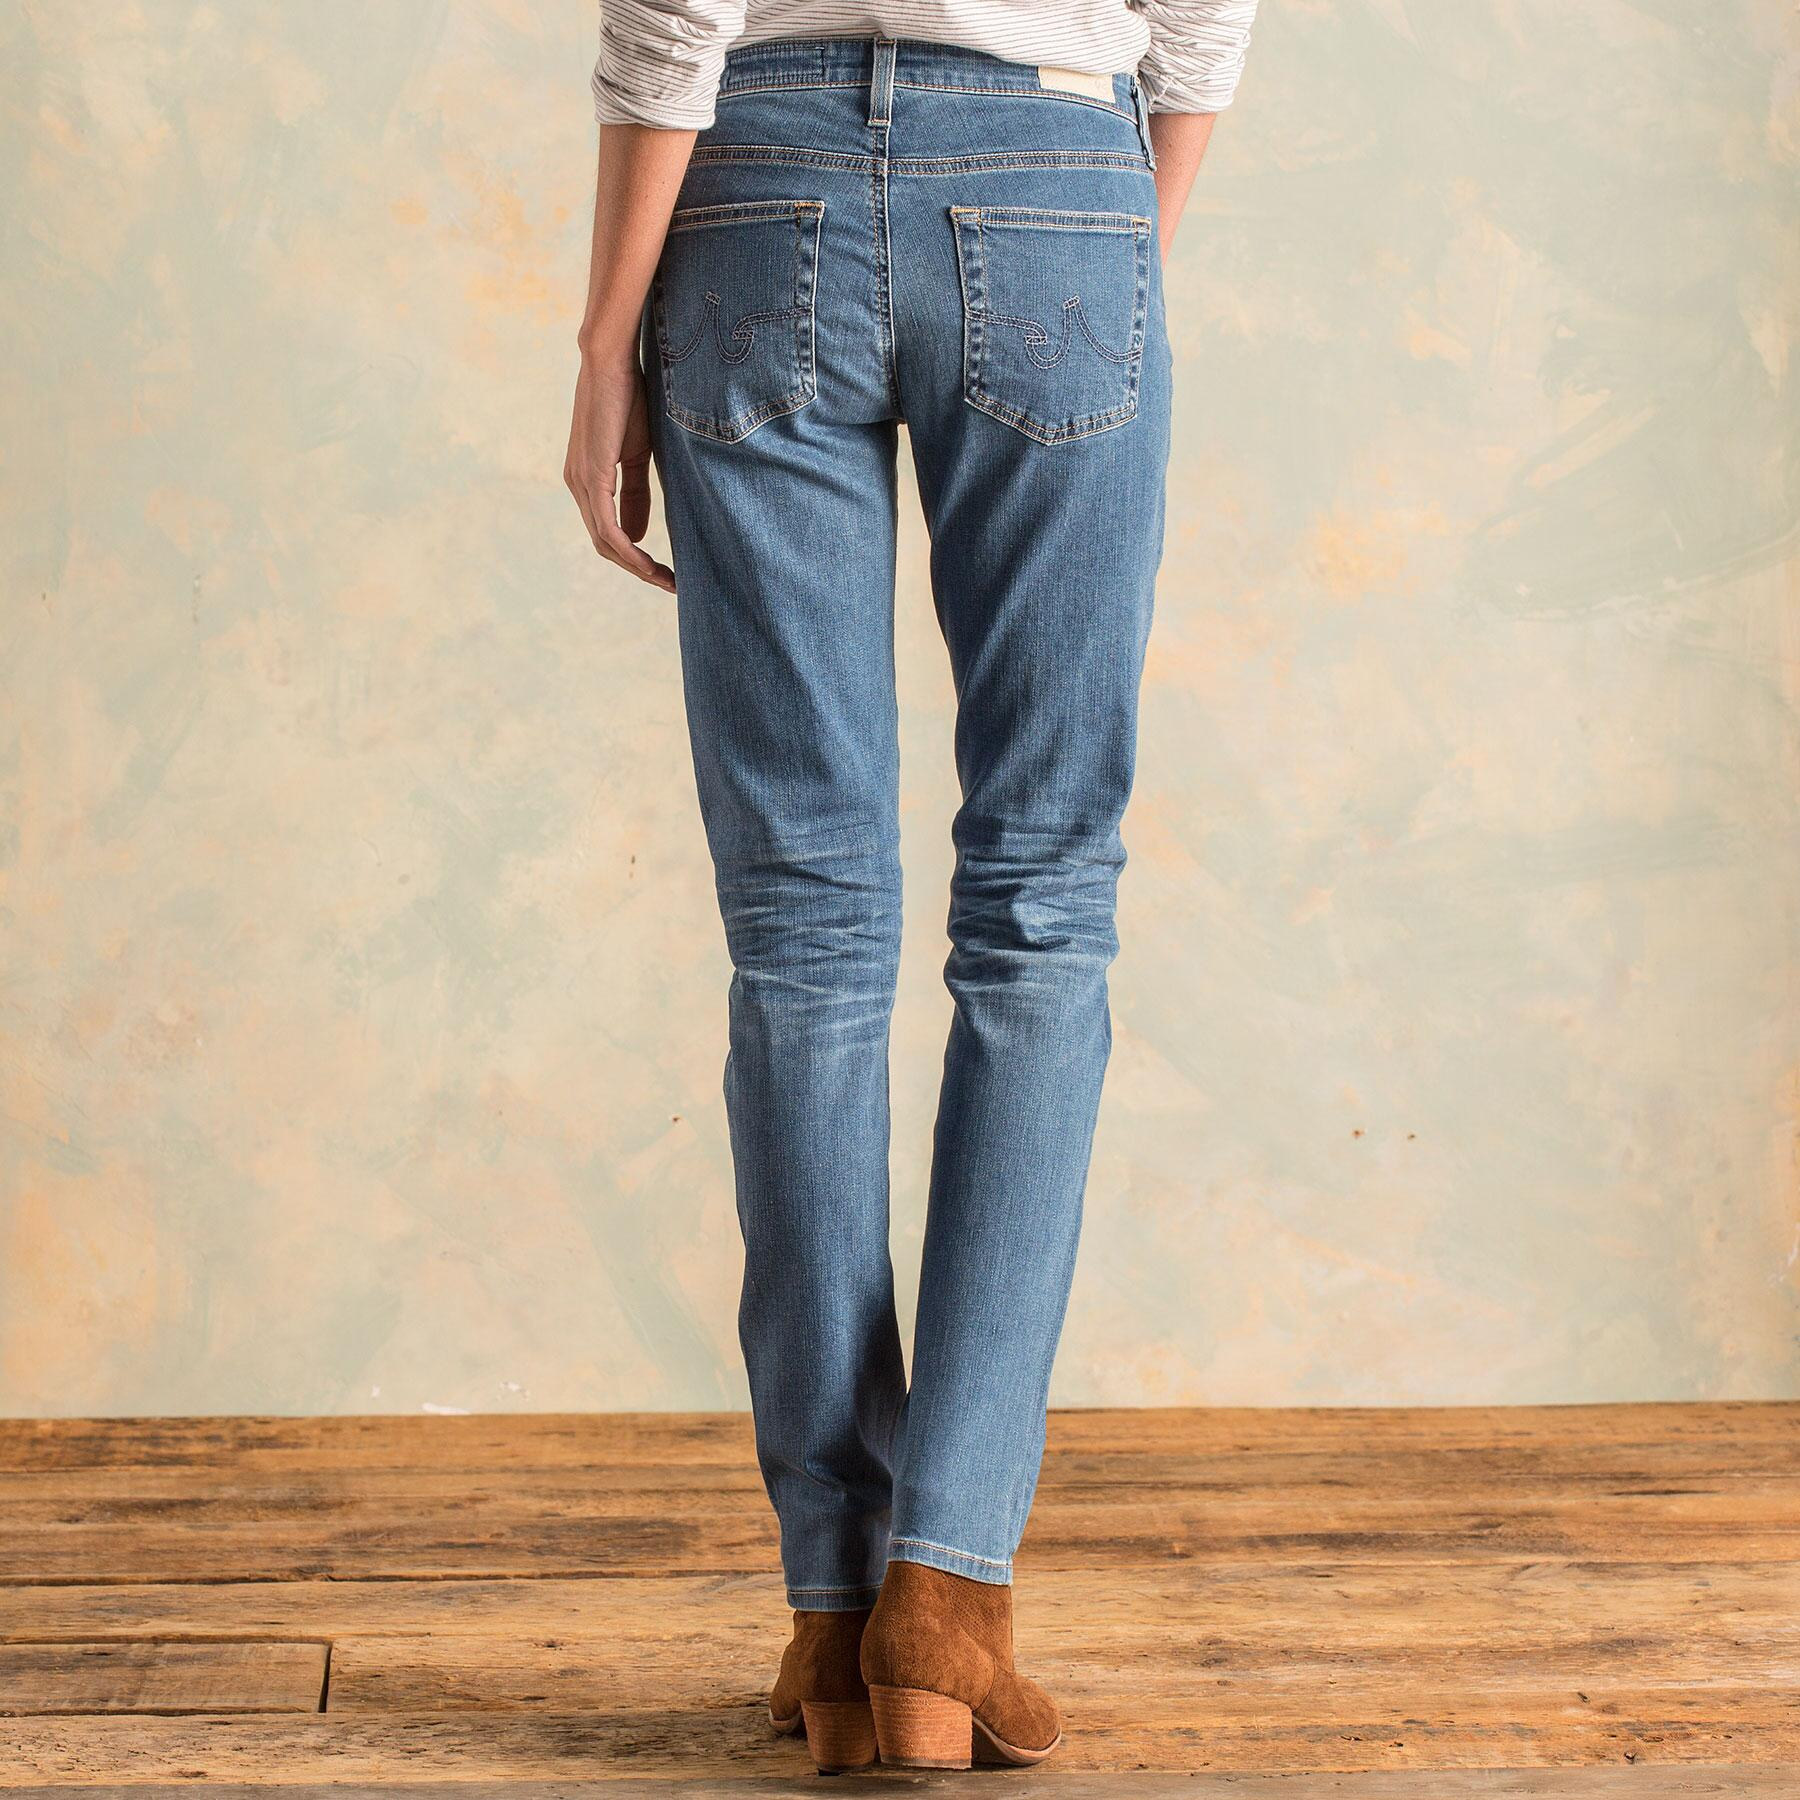 VINTAGE PRIMA JEANS BY A G: View 2